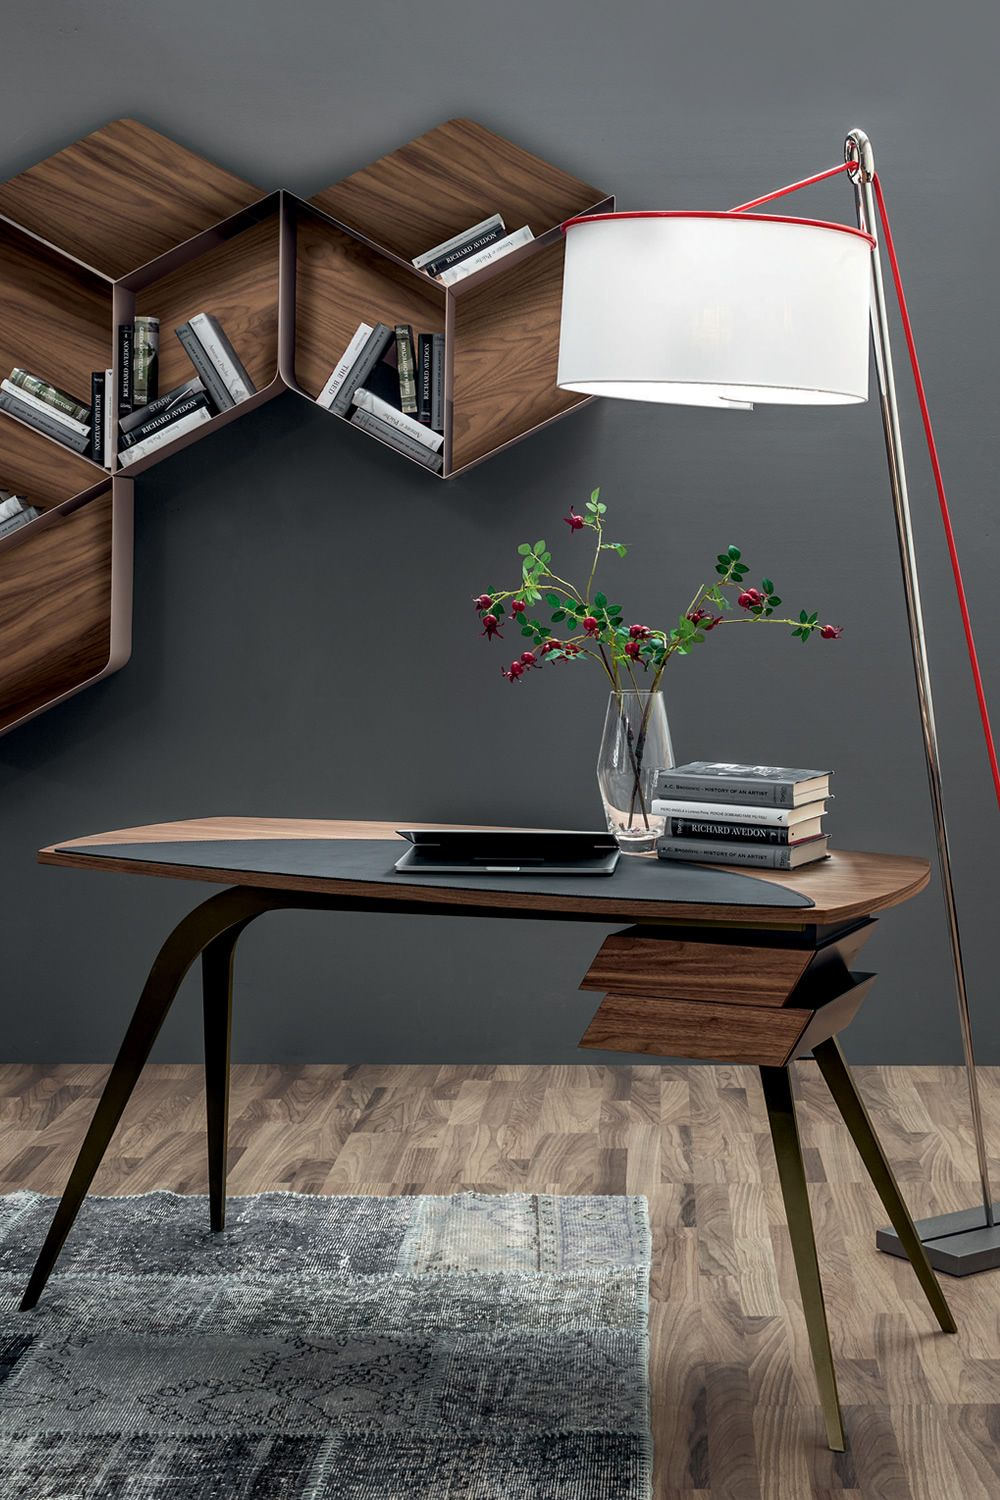 logos 7005 bureau tonin casa en m tal avec plateau en bois sediarreda. Black Bedroom Furniture Sets. Home Design Ideas